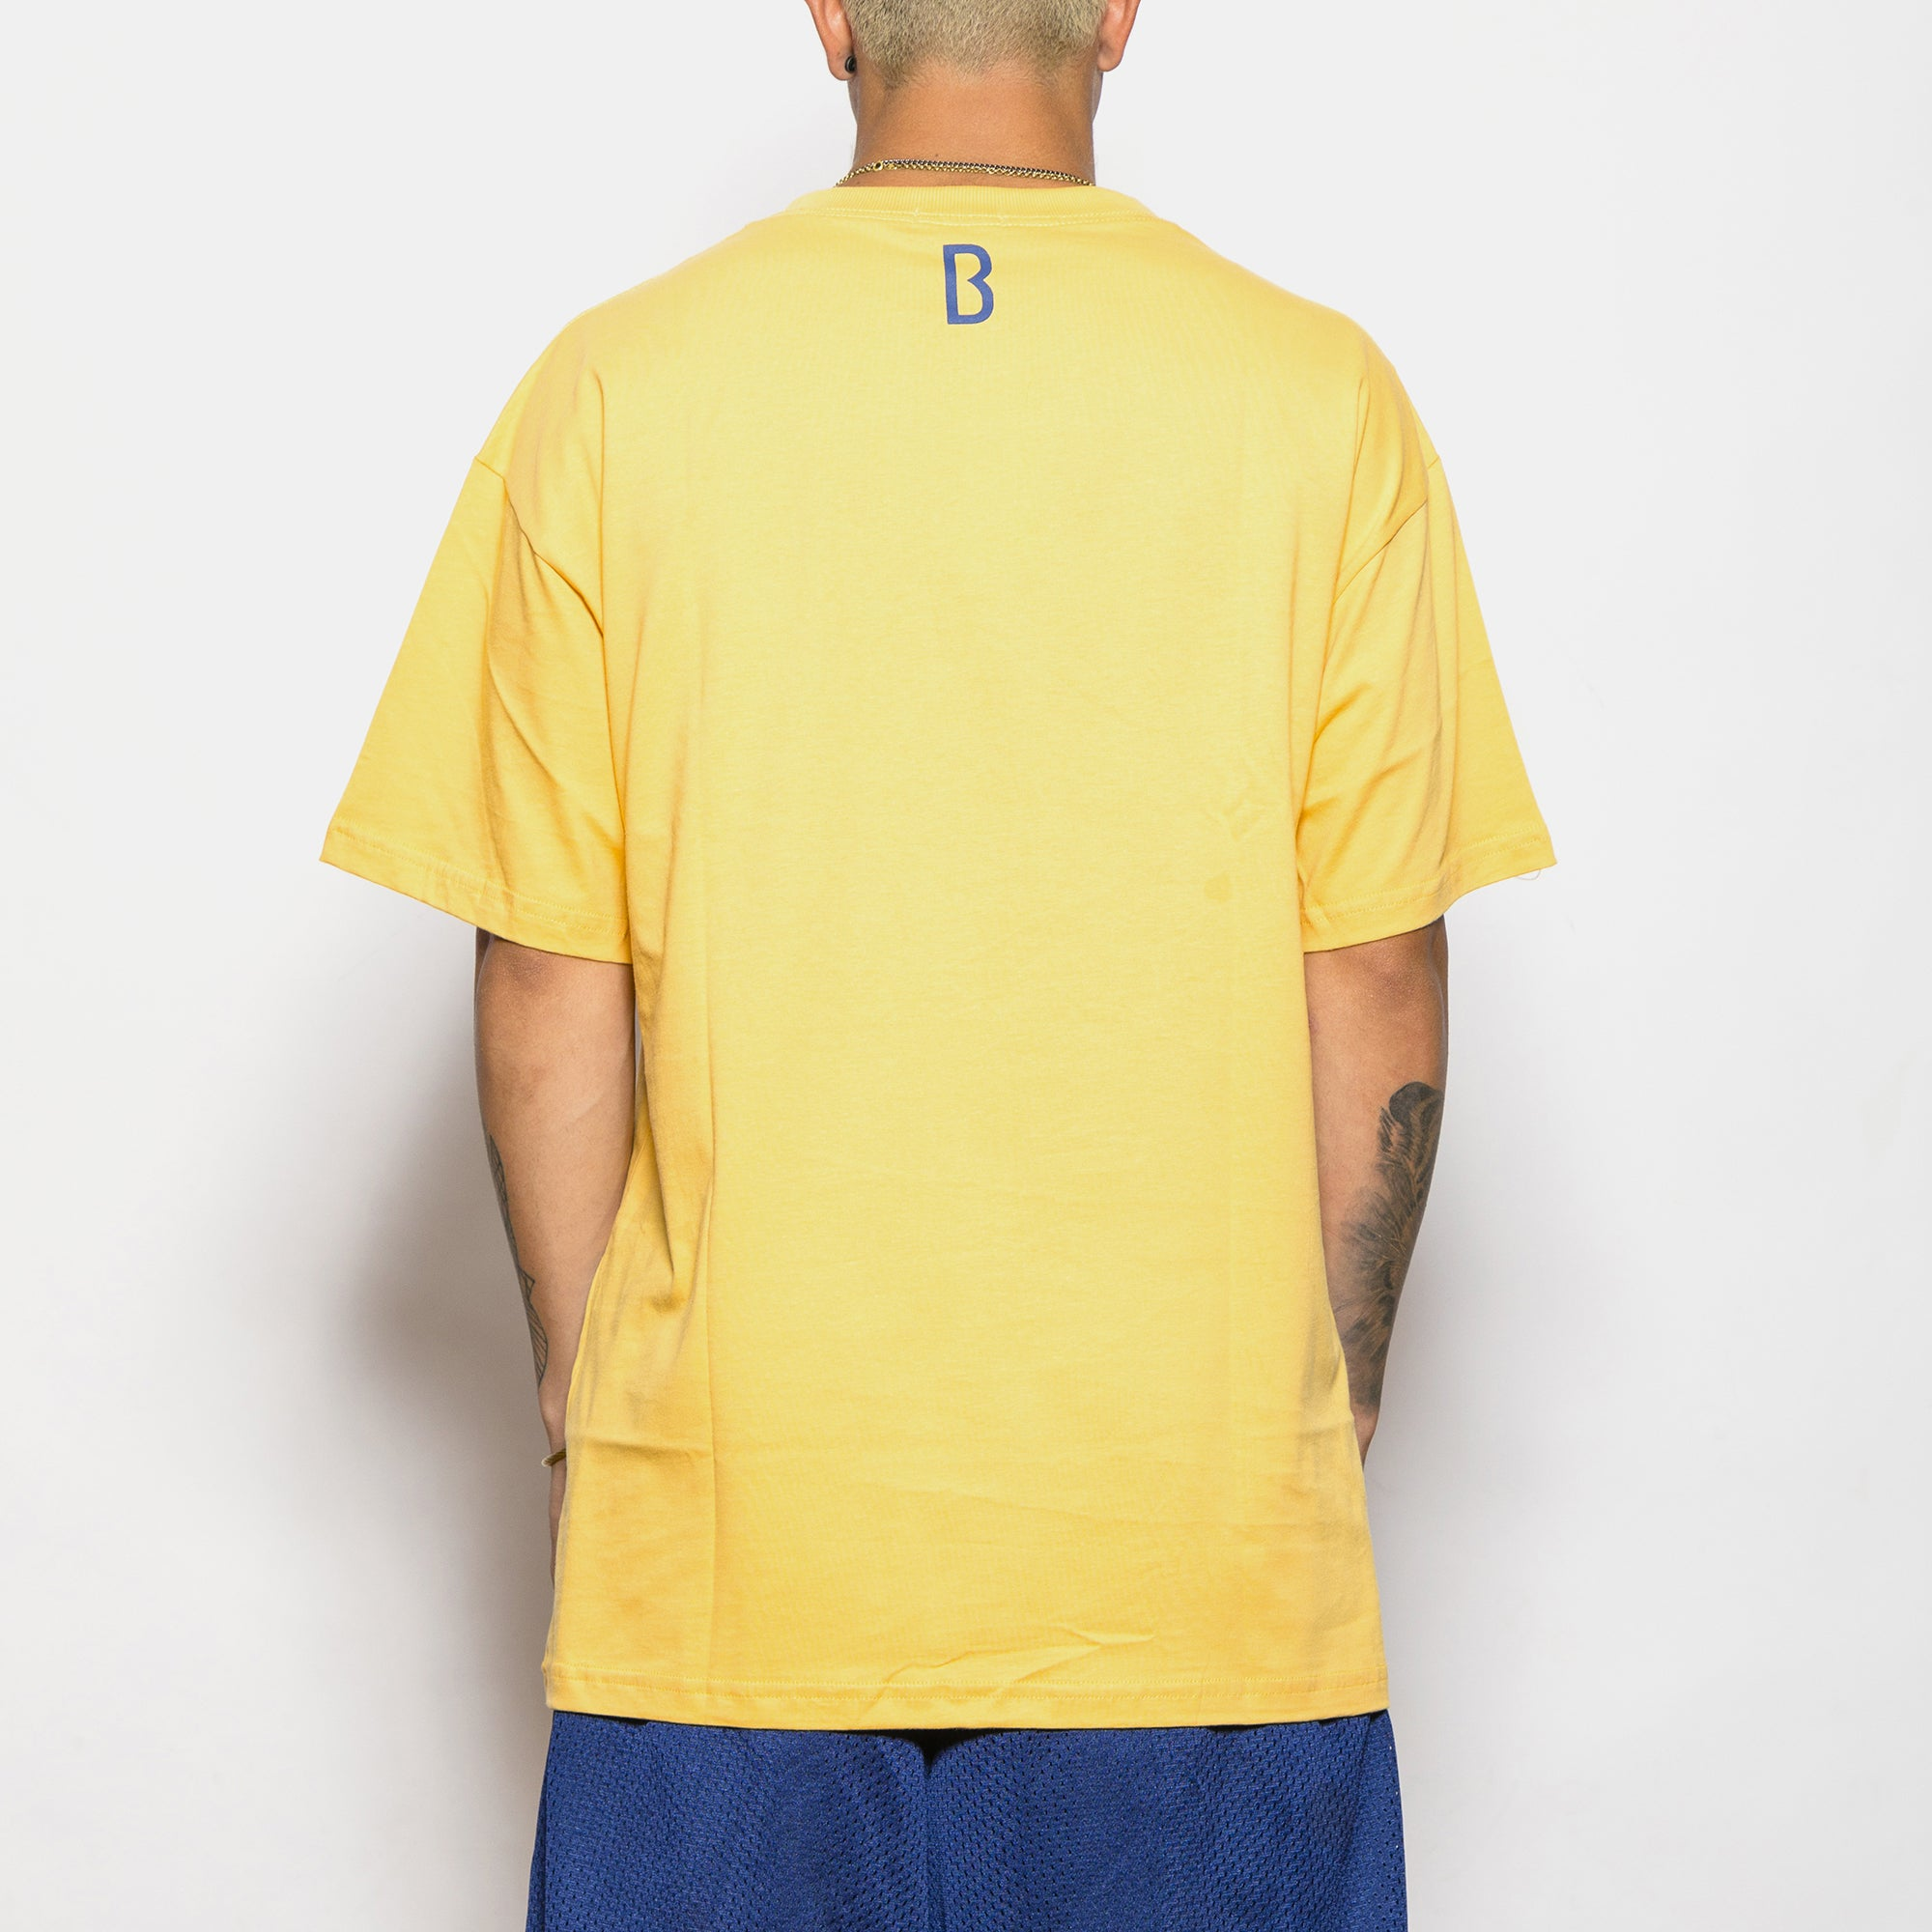 DUBUD | Camiseta Money Amarela